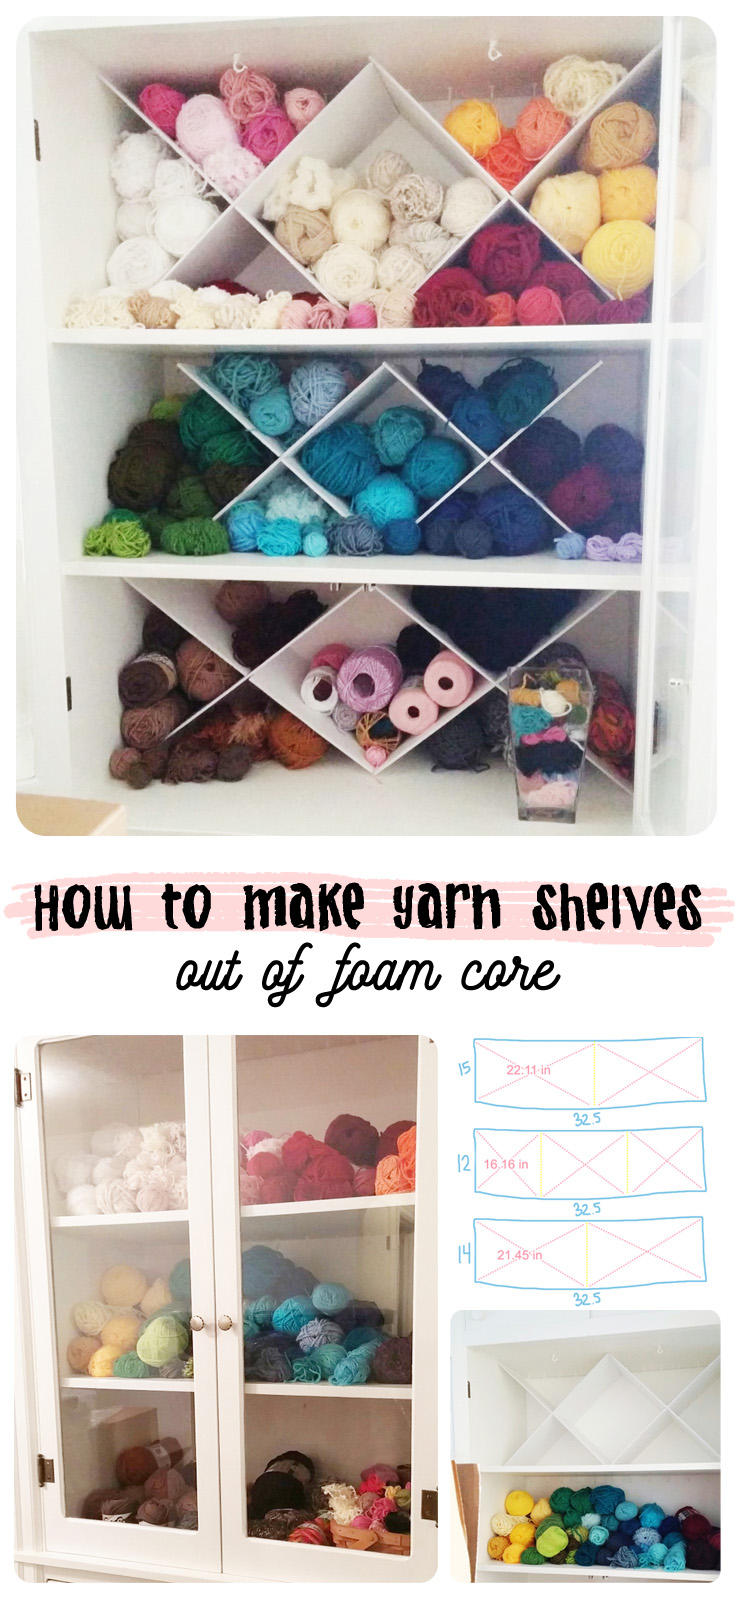 how-to-yarn-shelves.jpg